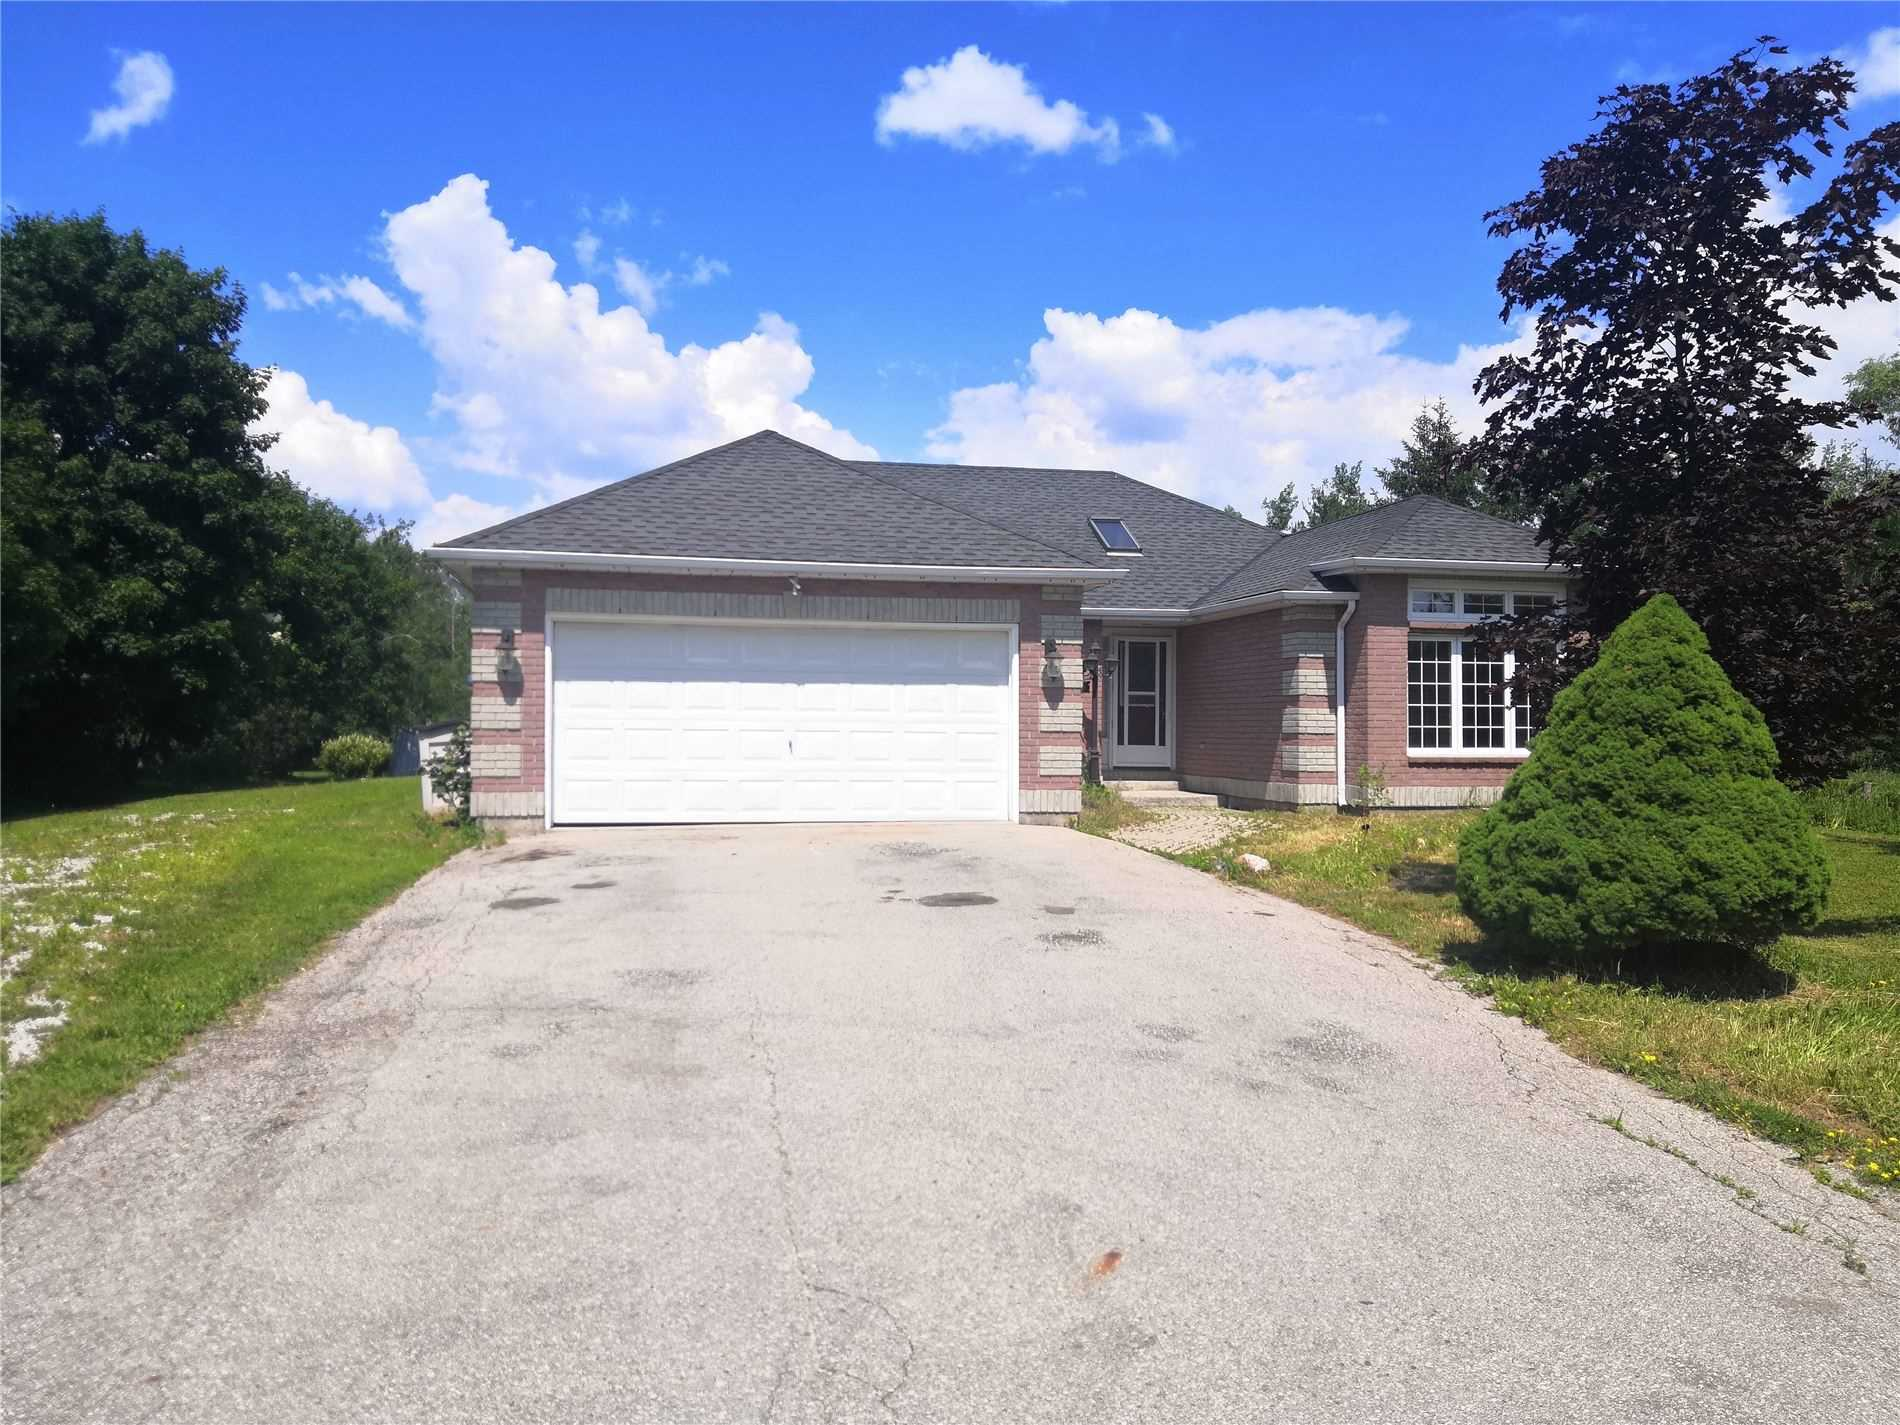 pictures of house for sale MLS: W5078758 located at 610 B Line, Orangeville L9W6M5